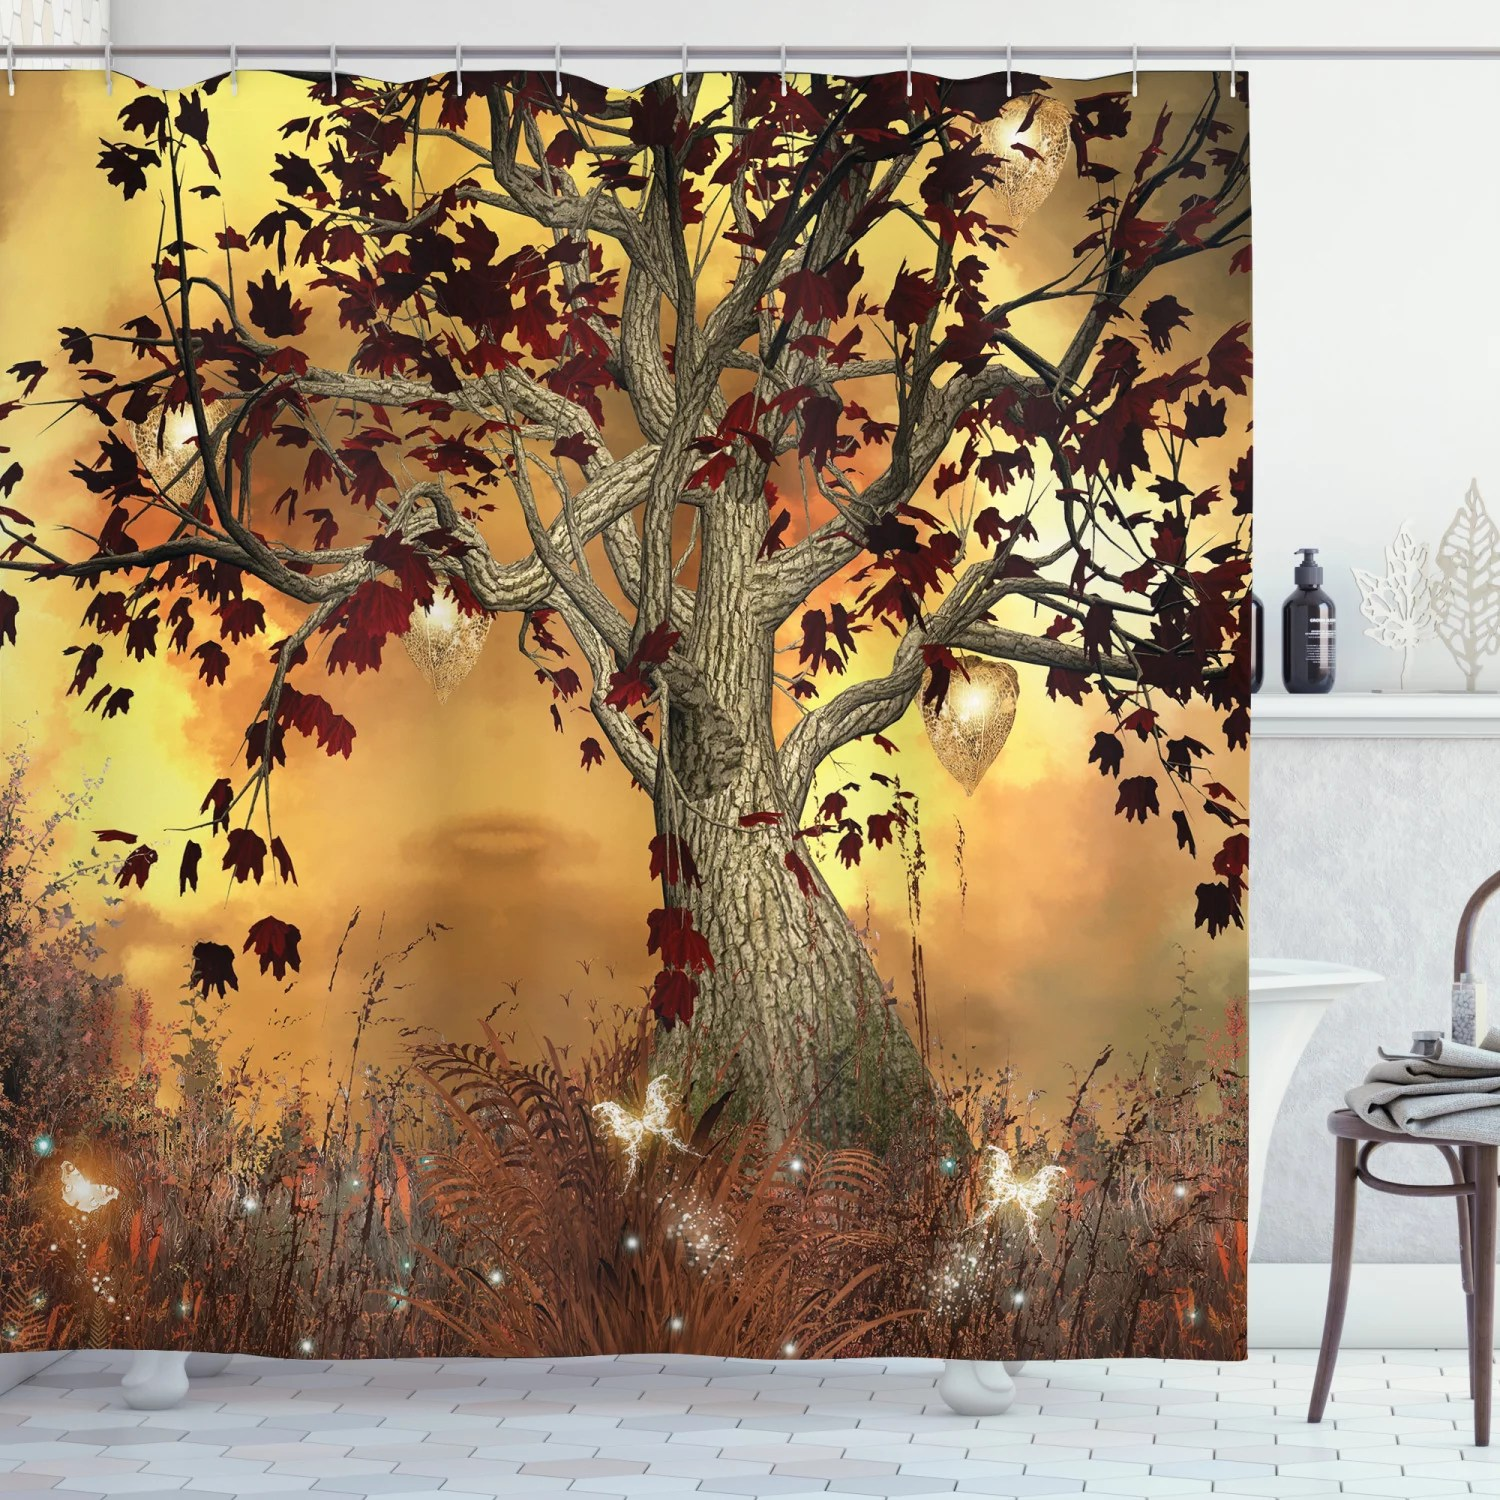 old twisted tree fabric shower curtain extra long 84 inch bathroom decorations walmart com